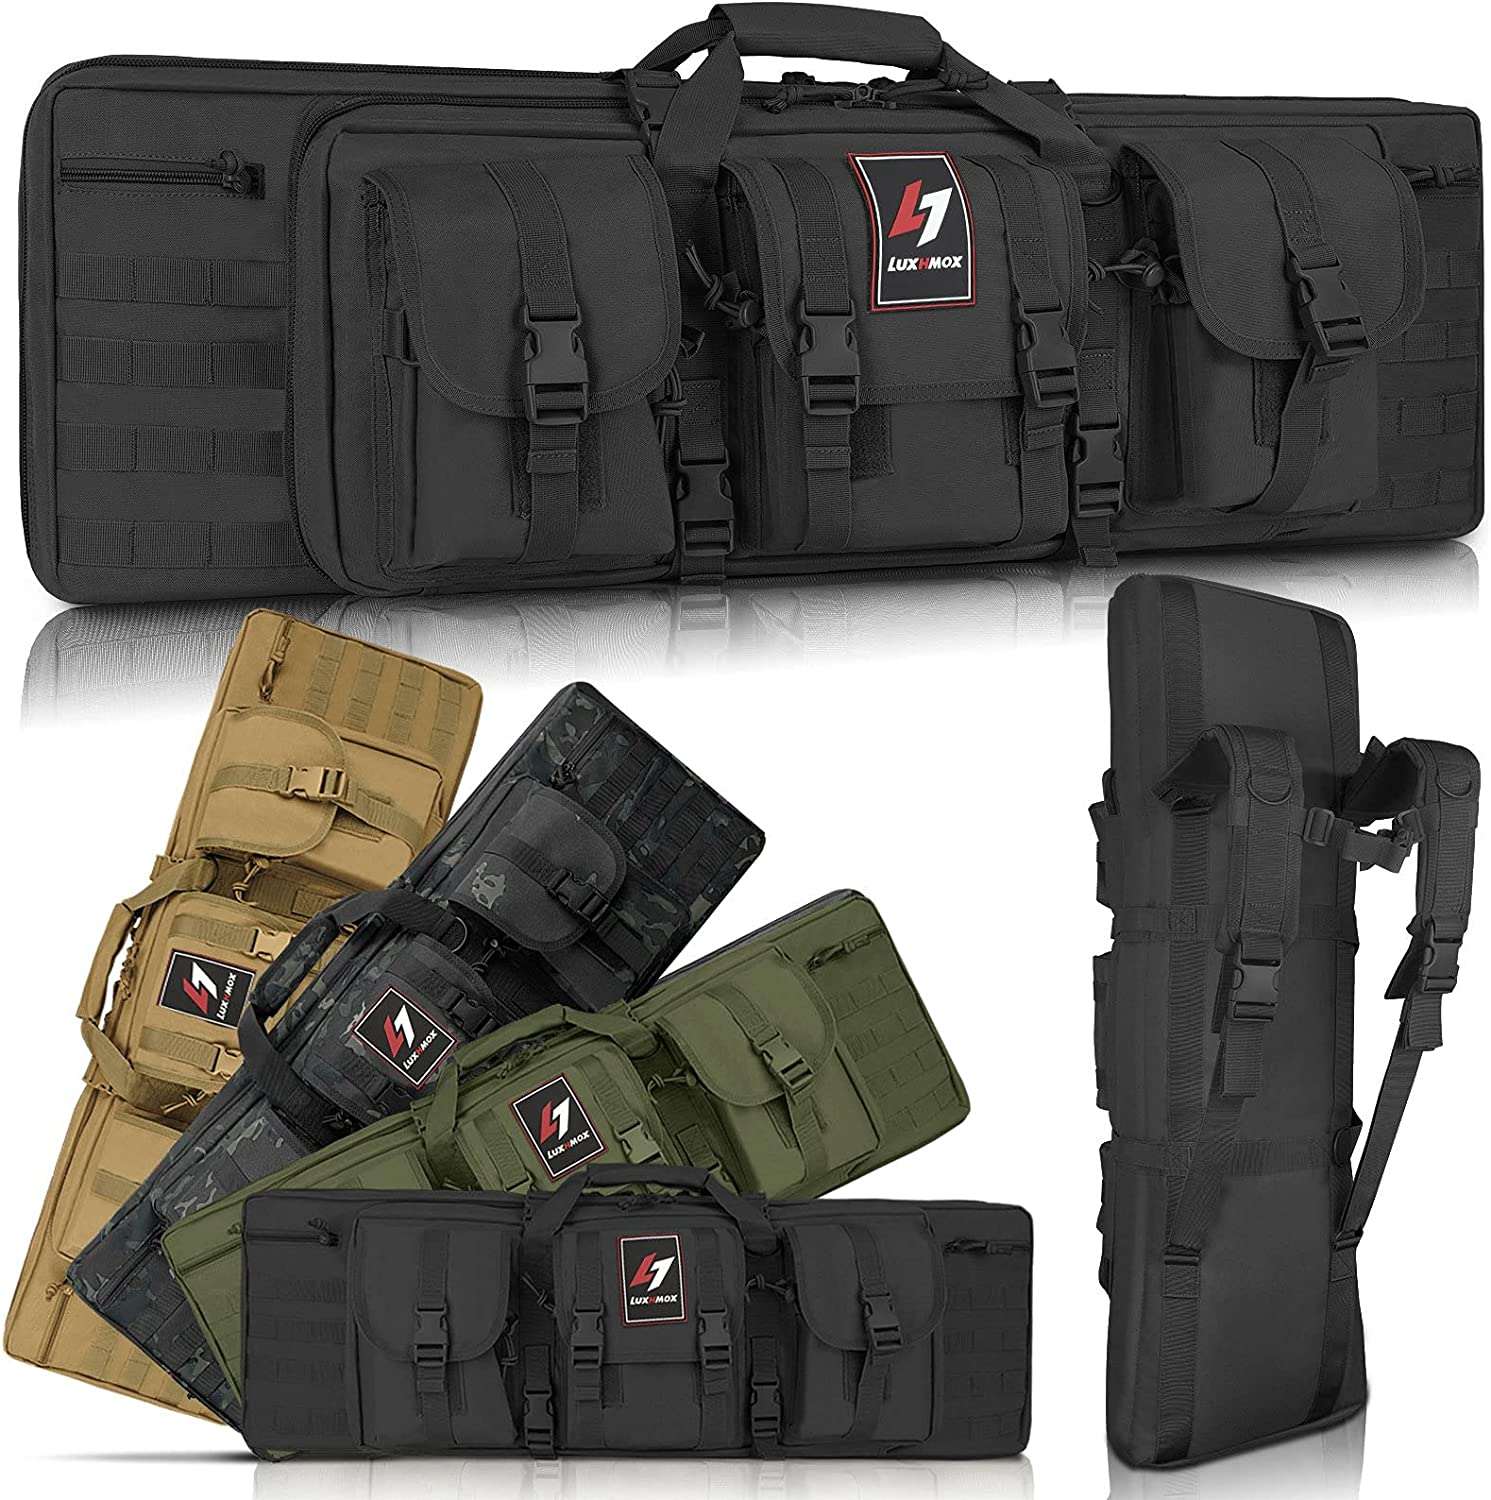 LUXHMOX Double Long Soft Rifle Fresno Mall Classic Over item handling Outdoor Case Ta American